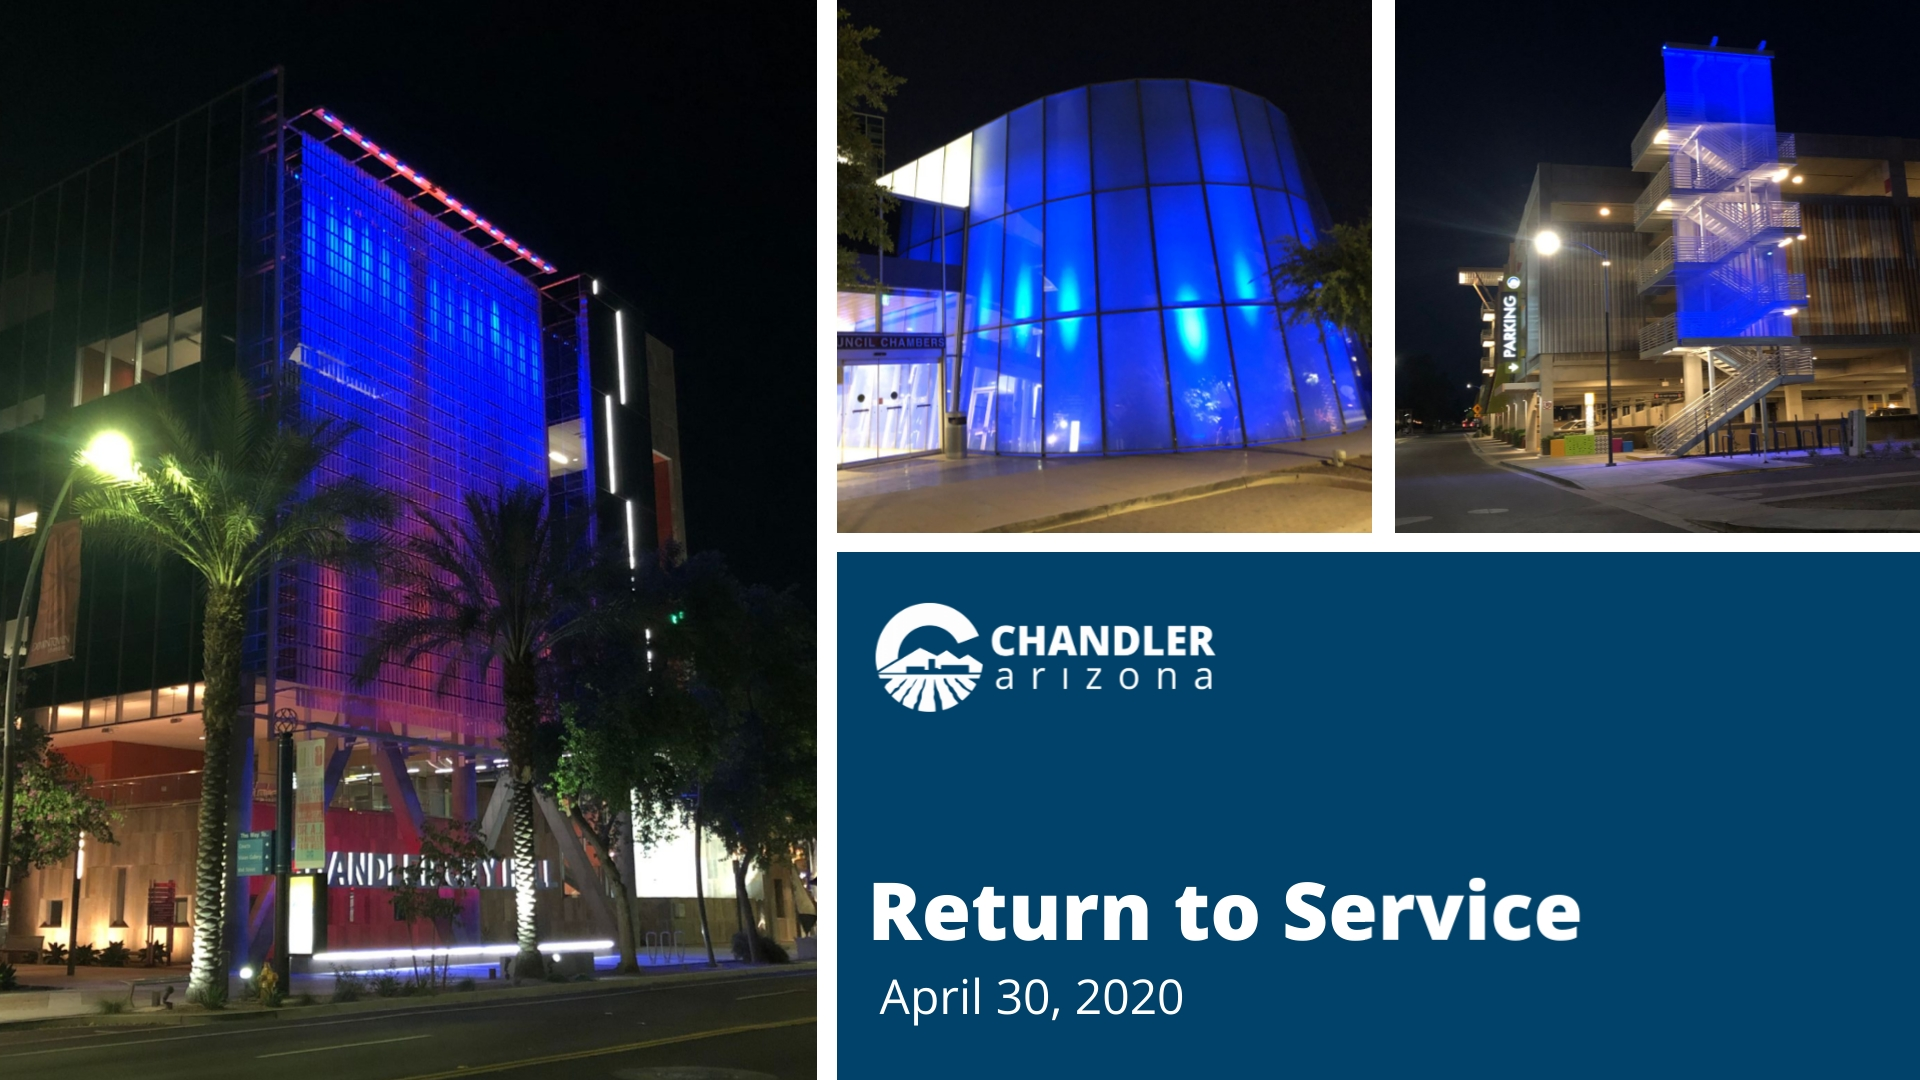 City of Chandler Return to Service